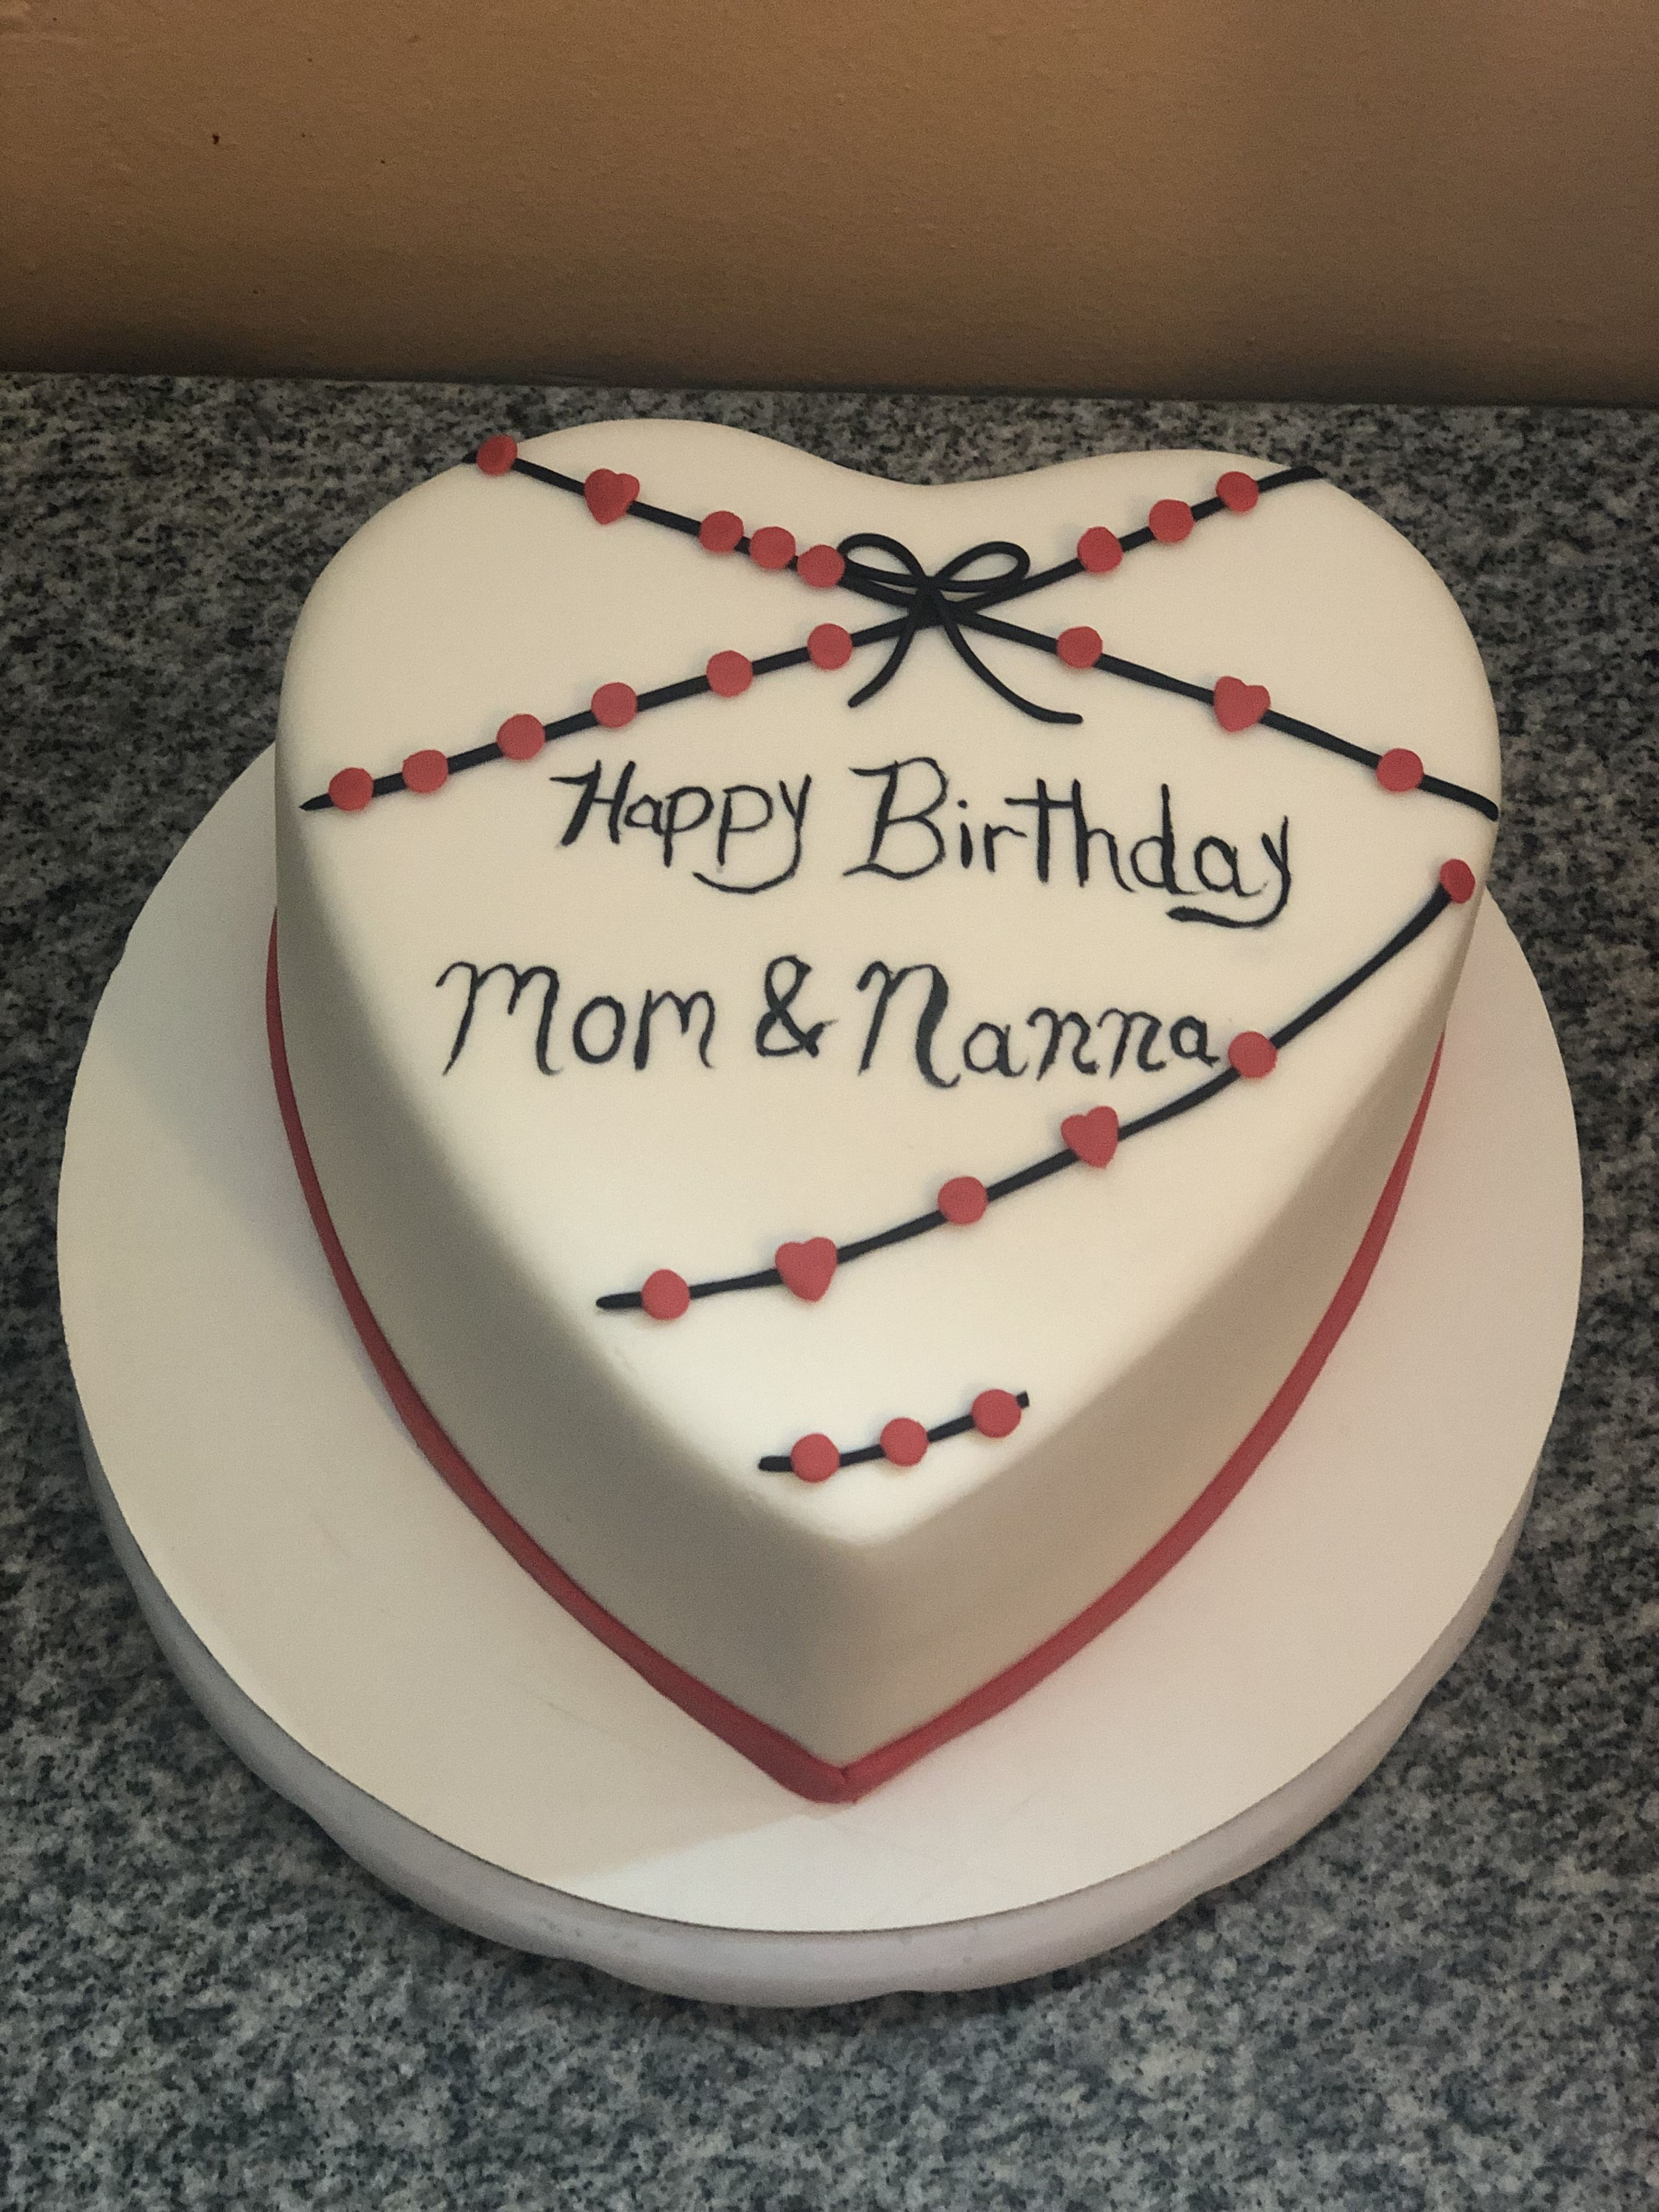 Saying Happy Birthday With This Delicious Heart Shape Cake For Mom